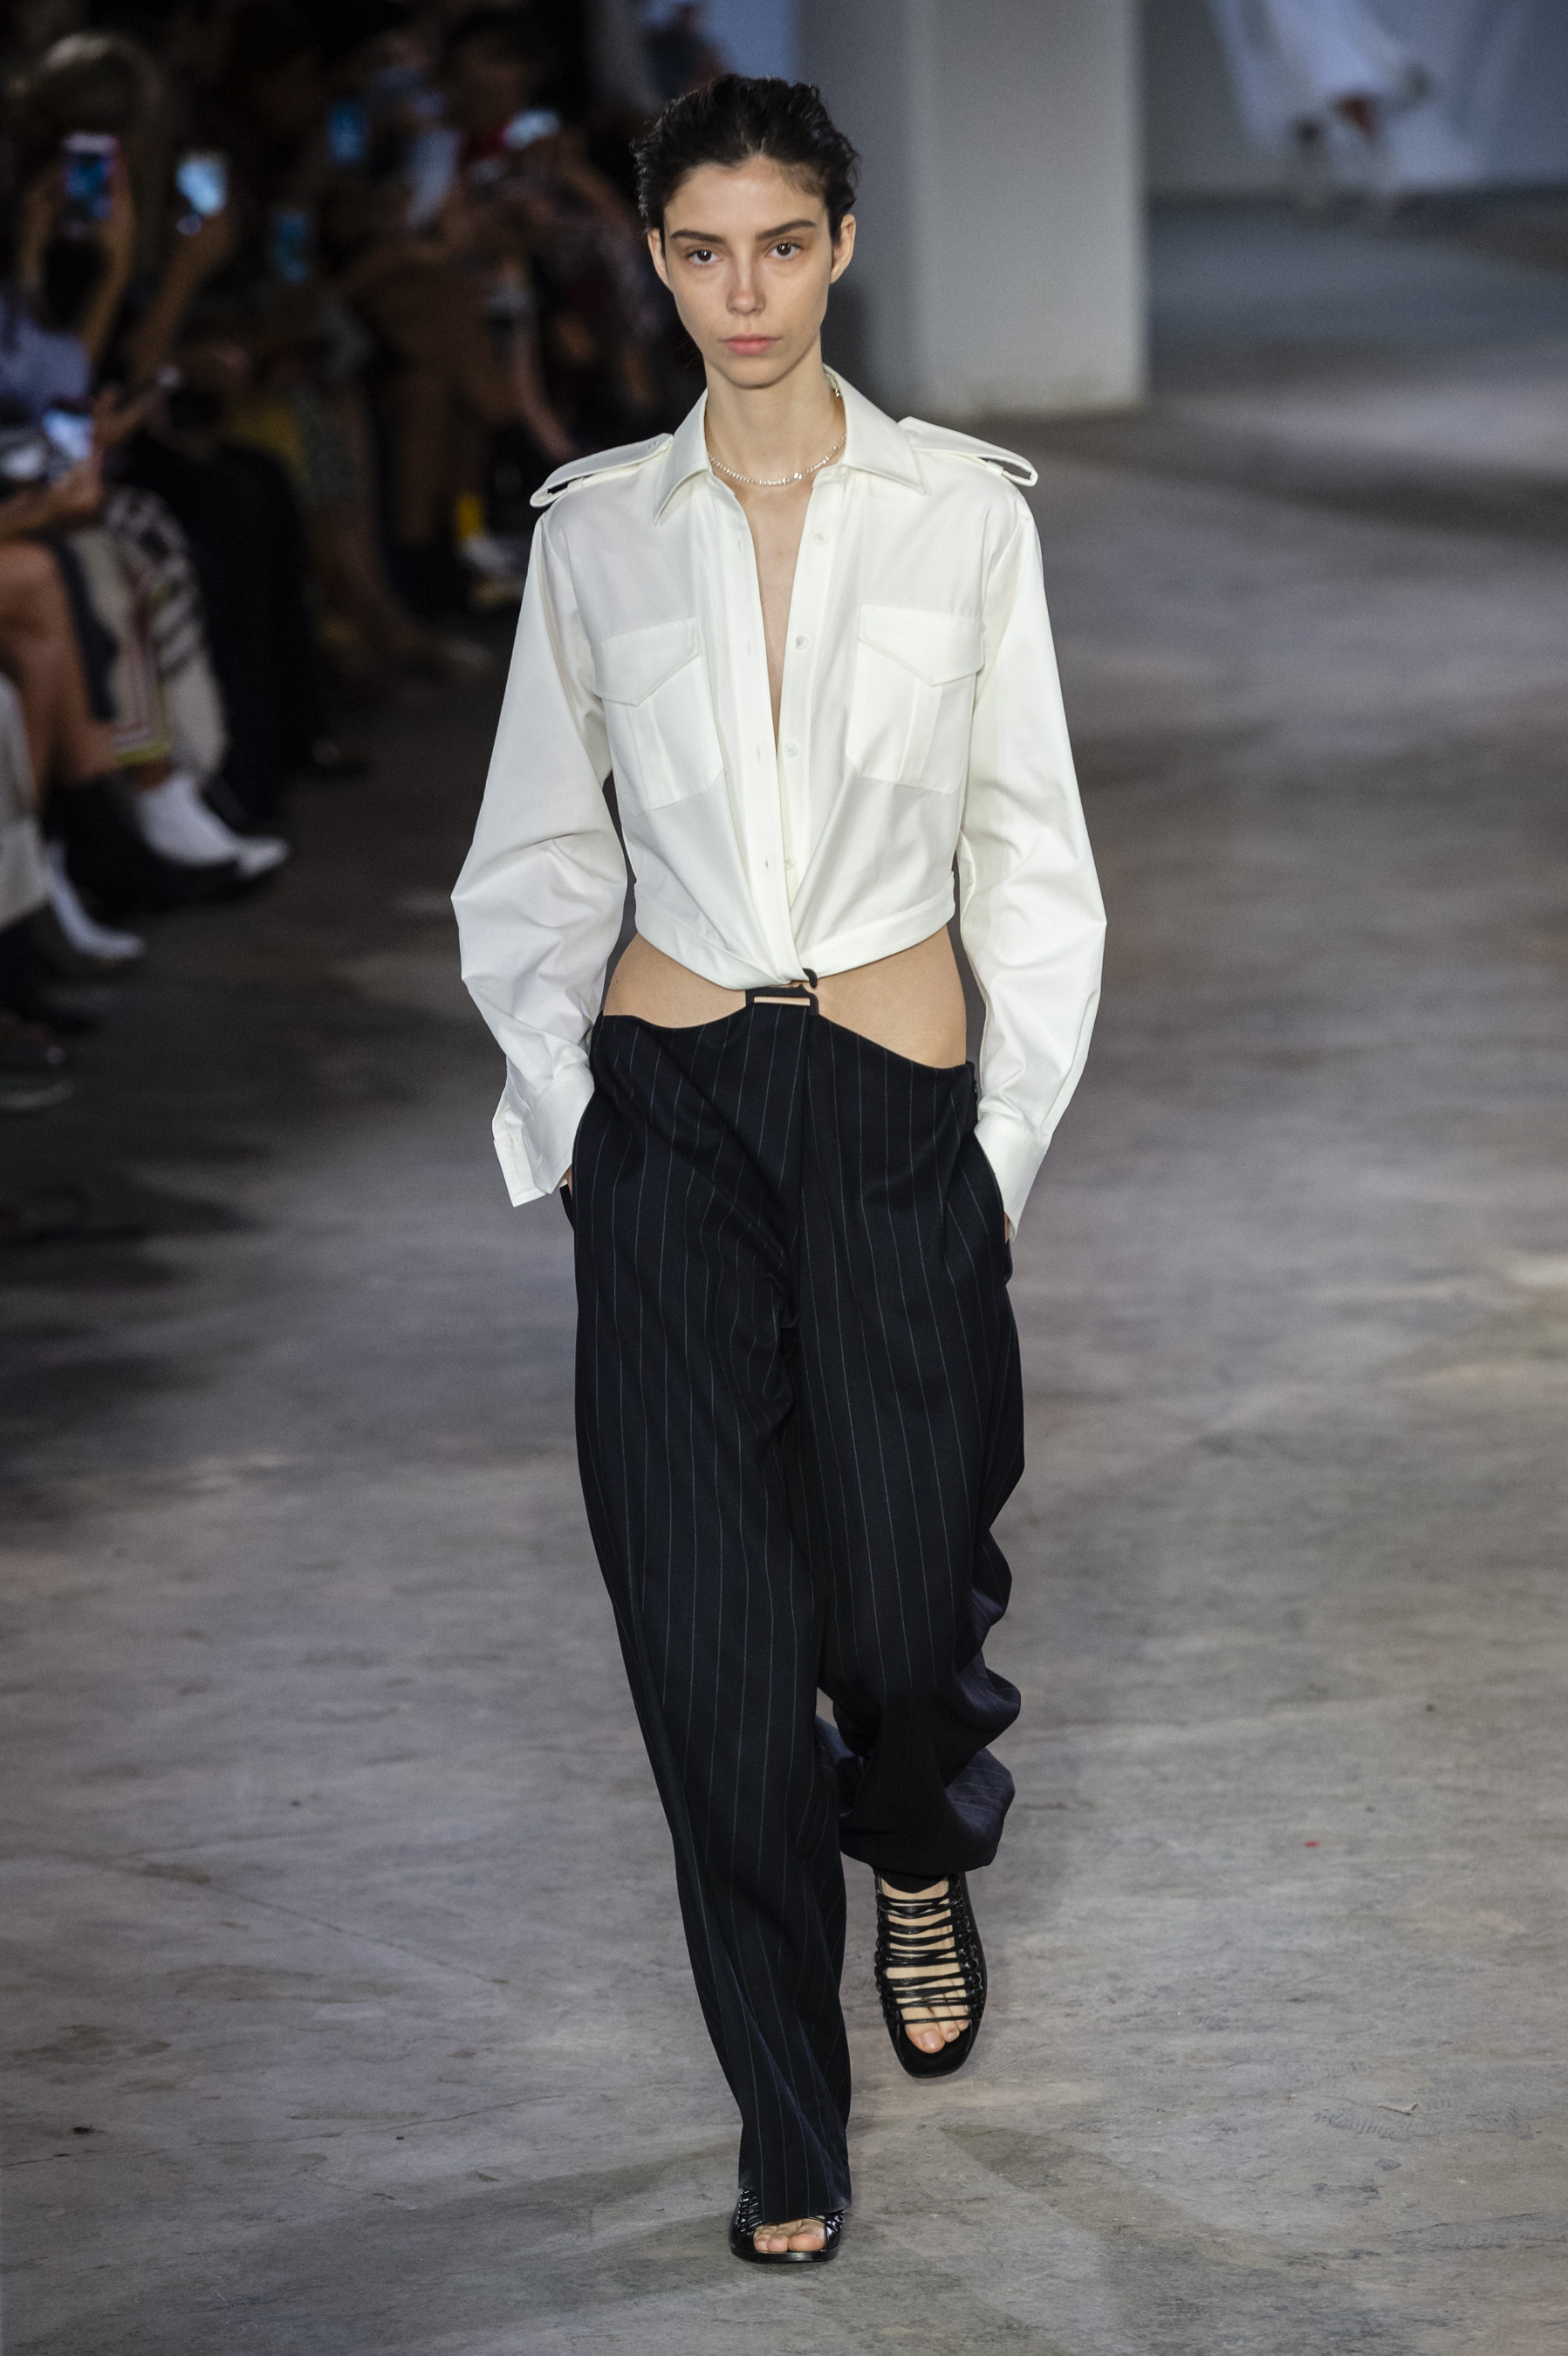 Dion Lee Runway Suspended Jumpsuit in White Collar Top and Pinstripe Navy Bottoms  Spring 19 RTW